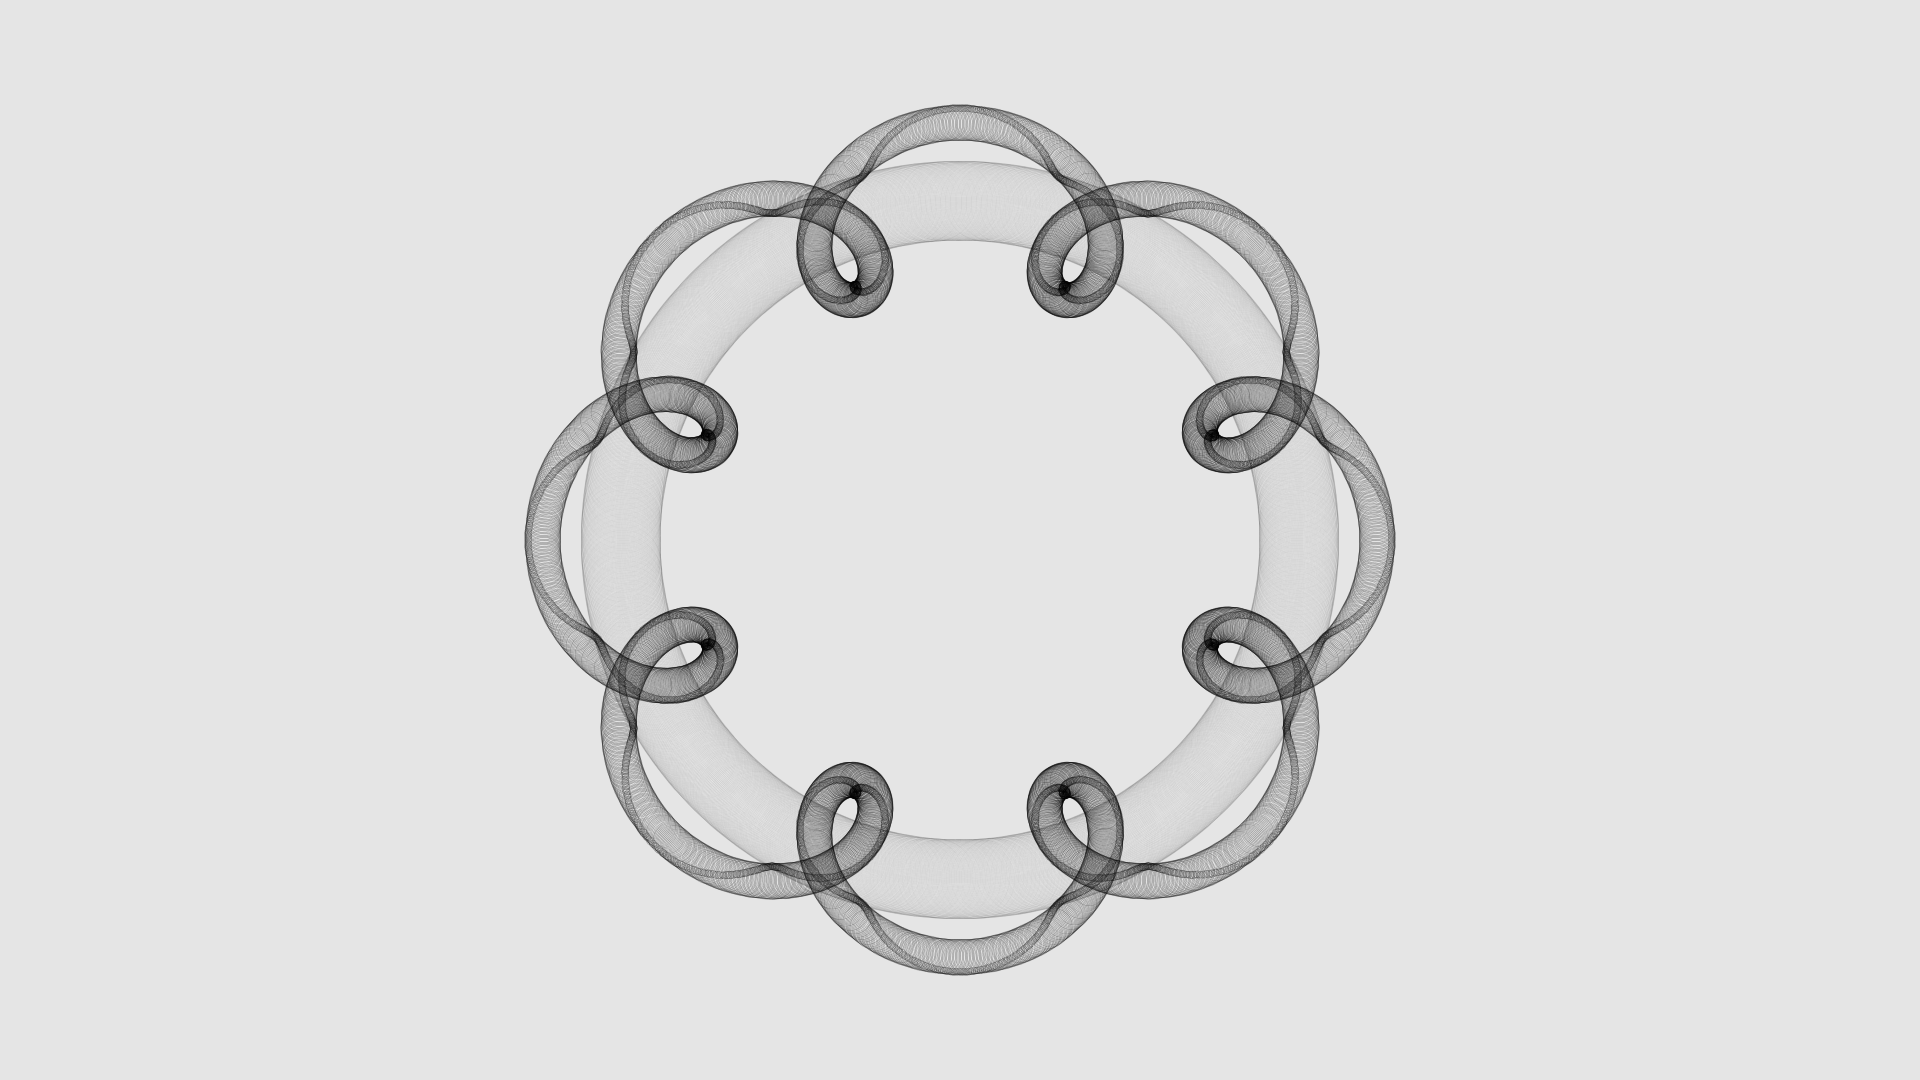 orrery-showcircles-showearth-M3E8-F4704-588-196-O339.2261-77.84586-14.928045-D79.0-35.0-7.0.png